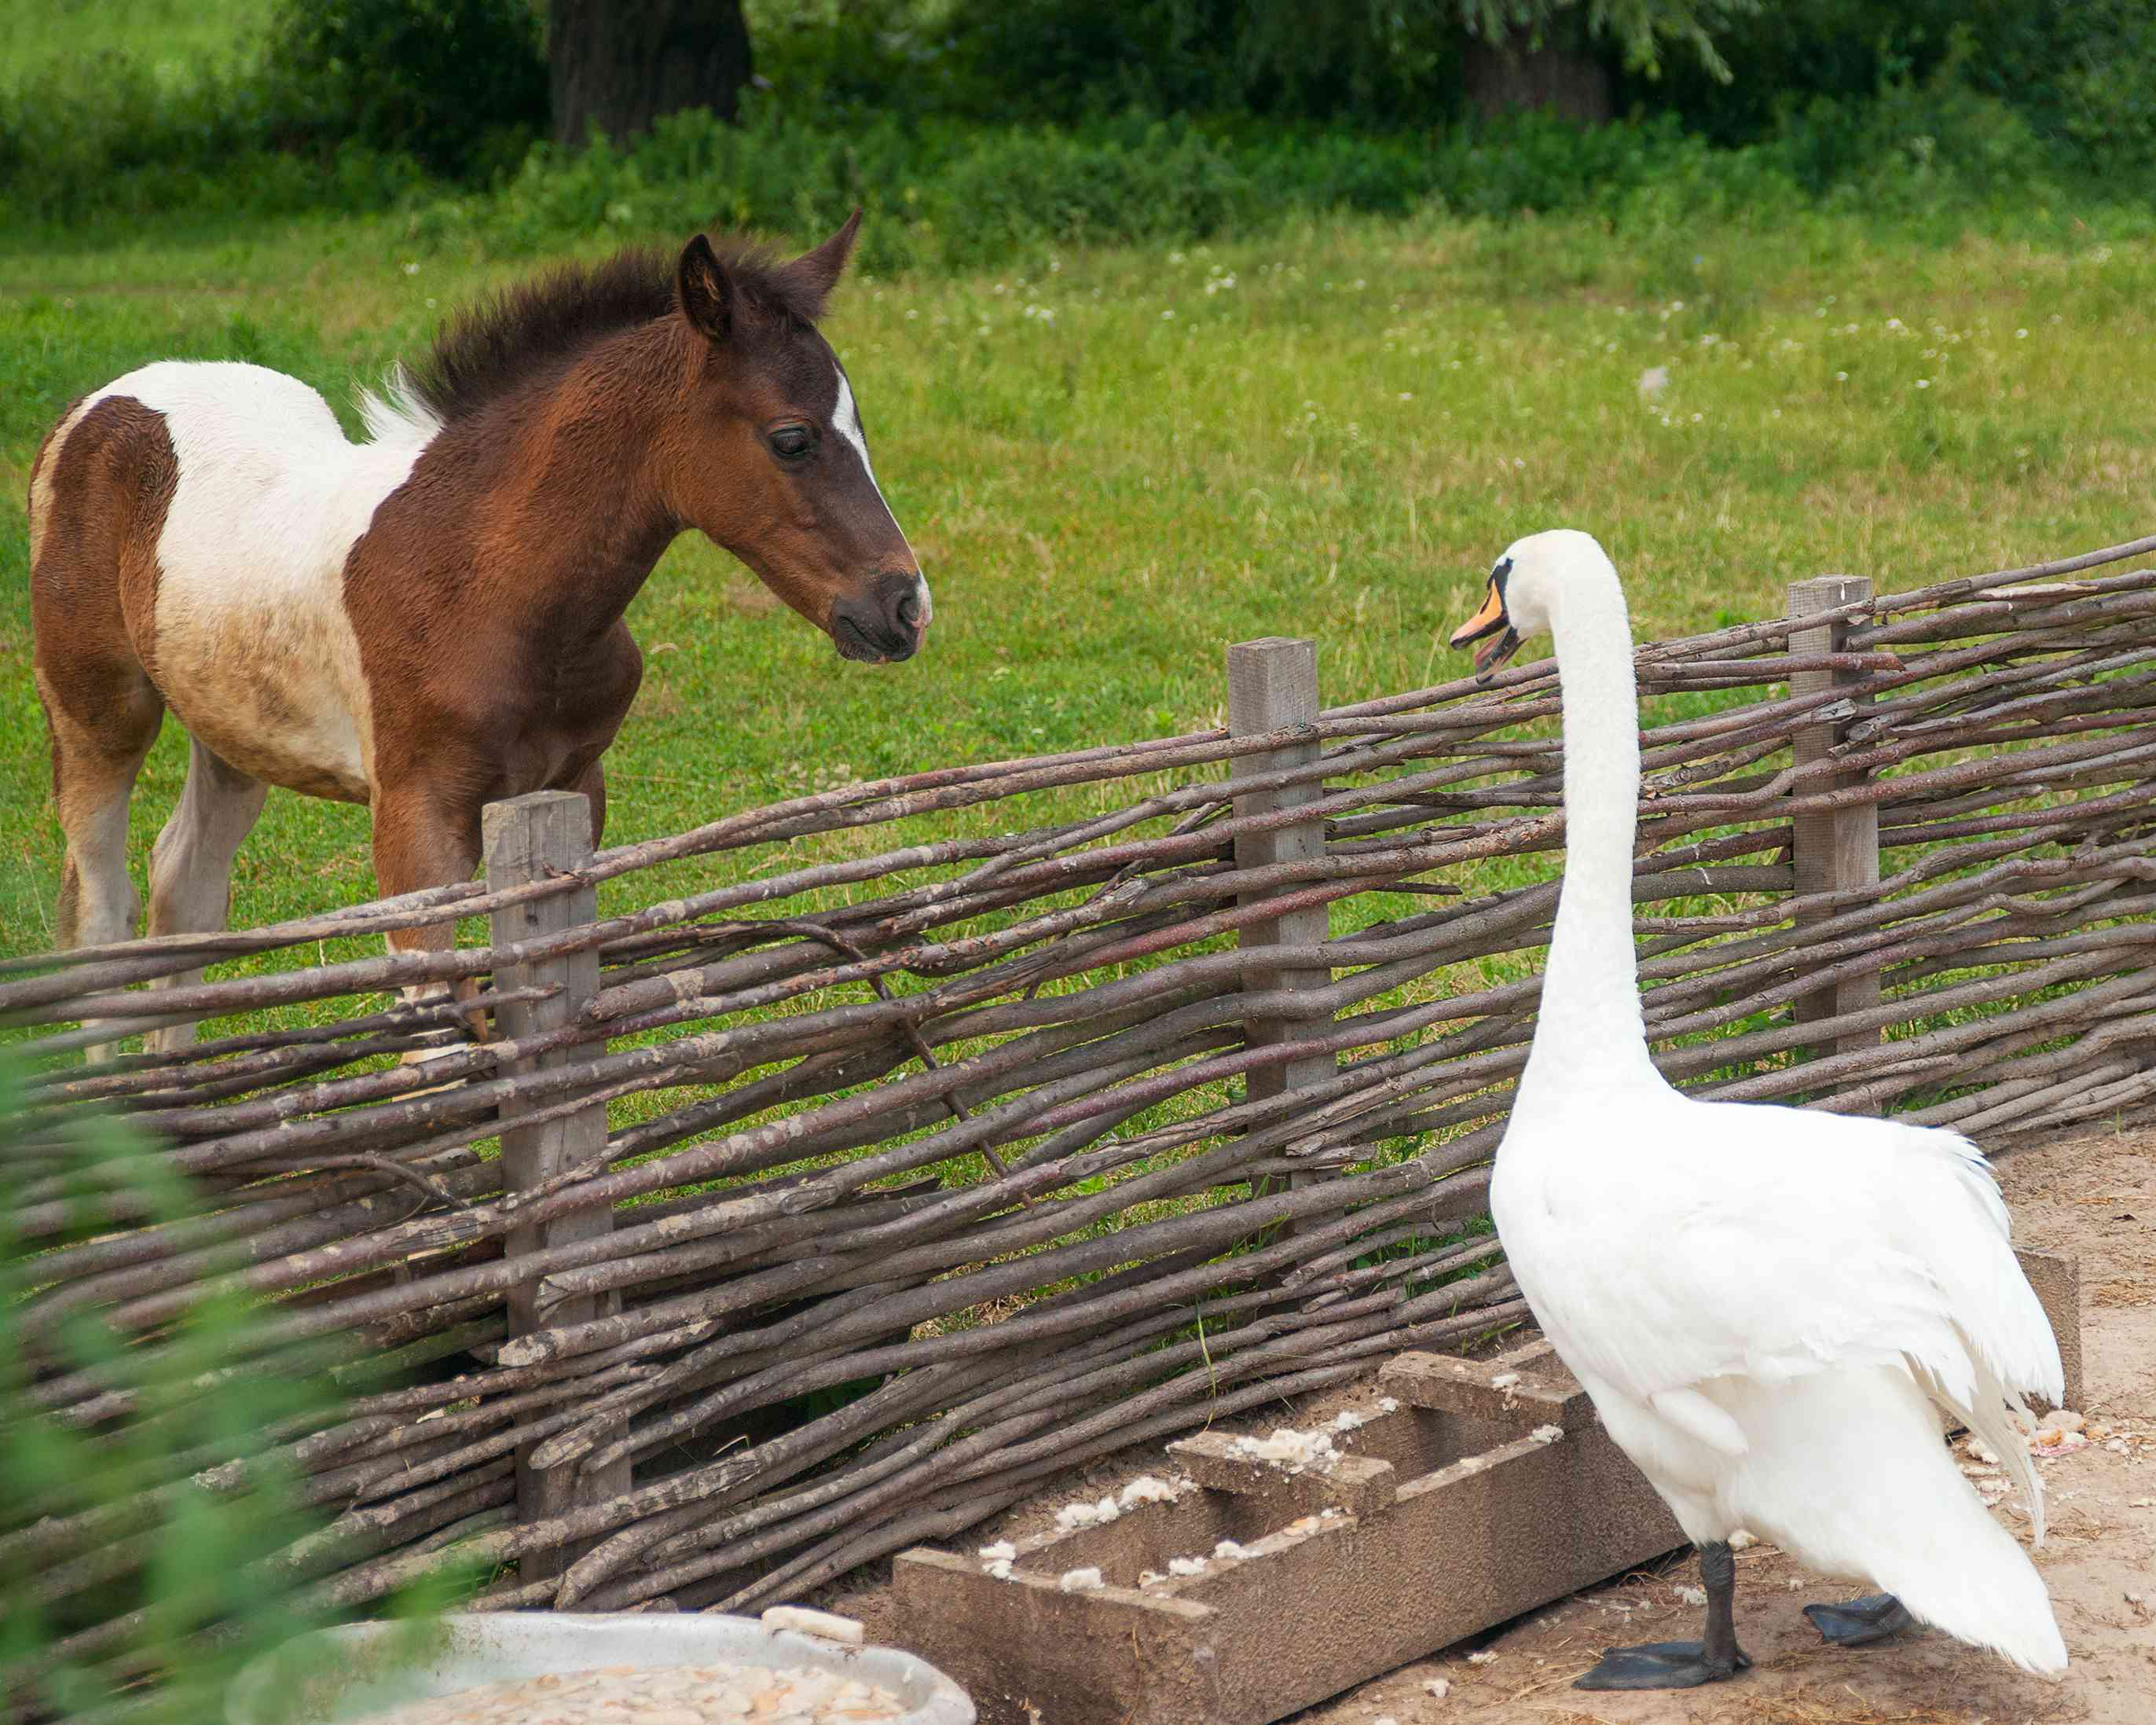 Goose and pony looking over a fence.